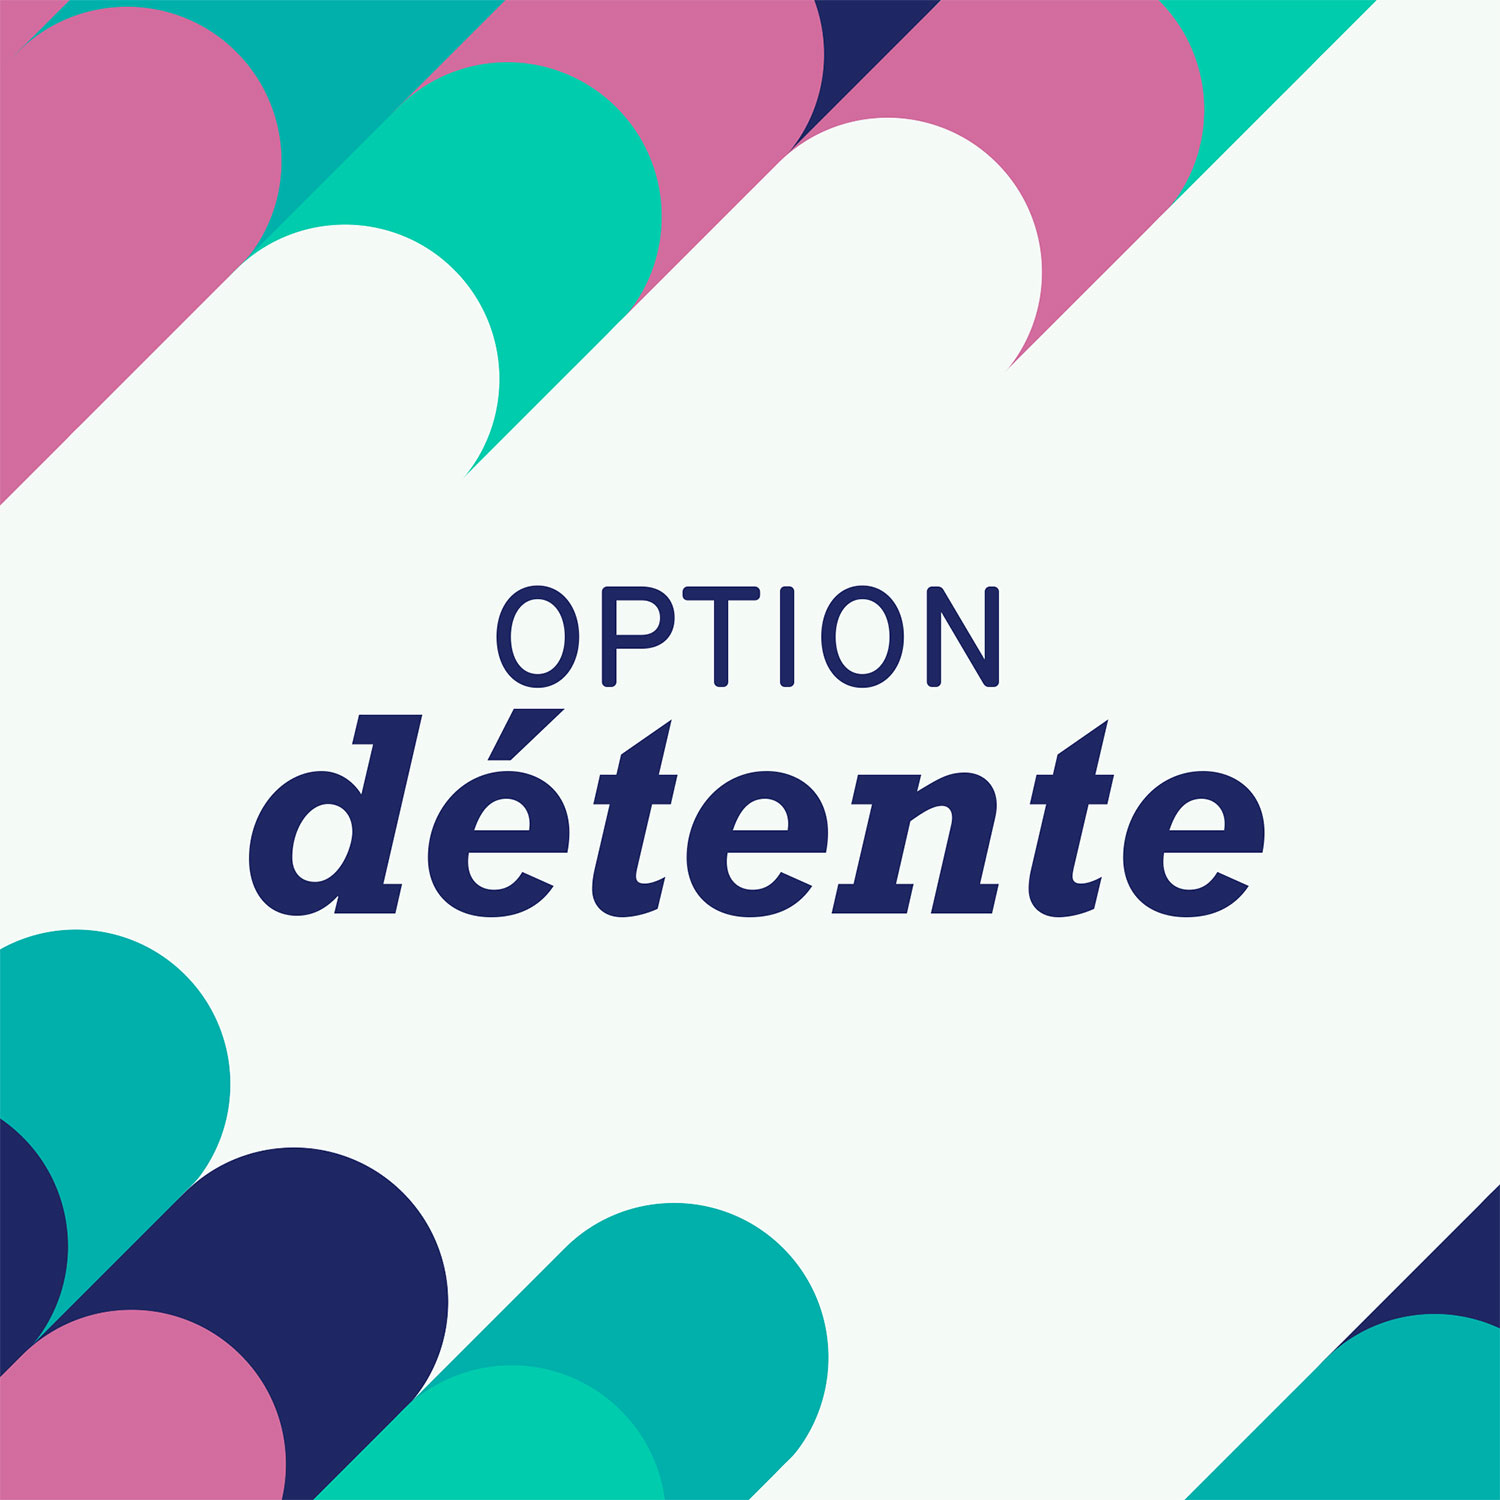 Option detente